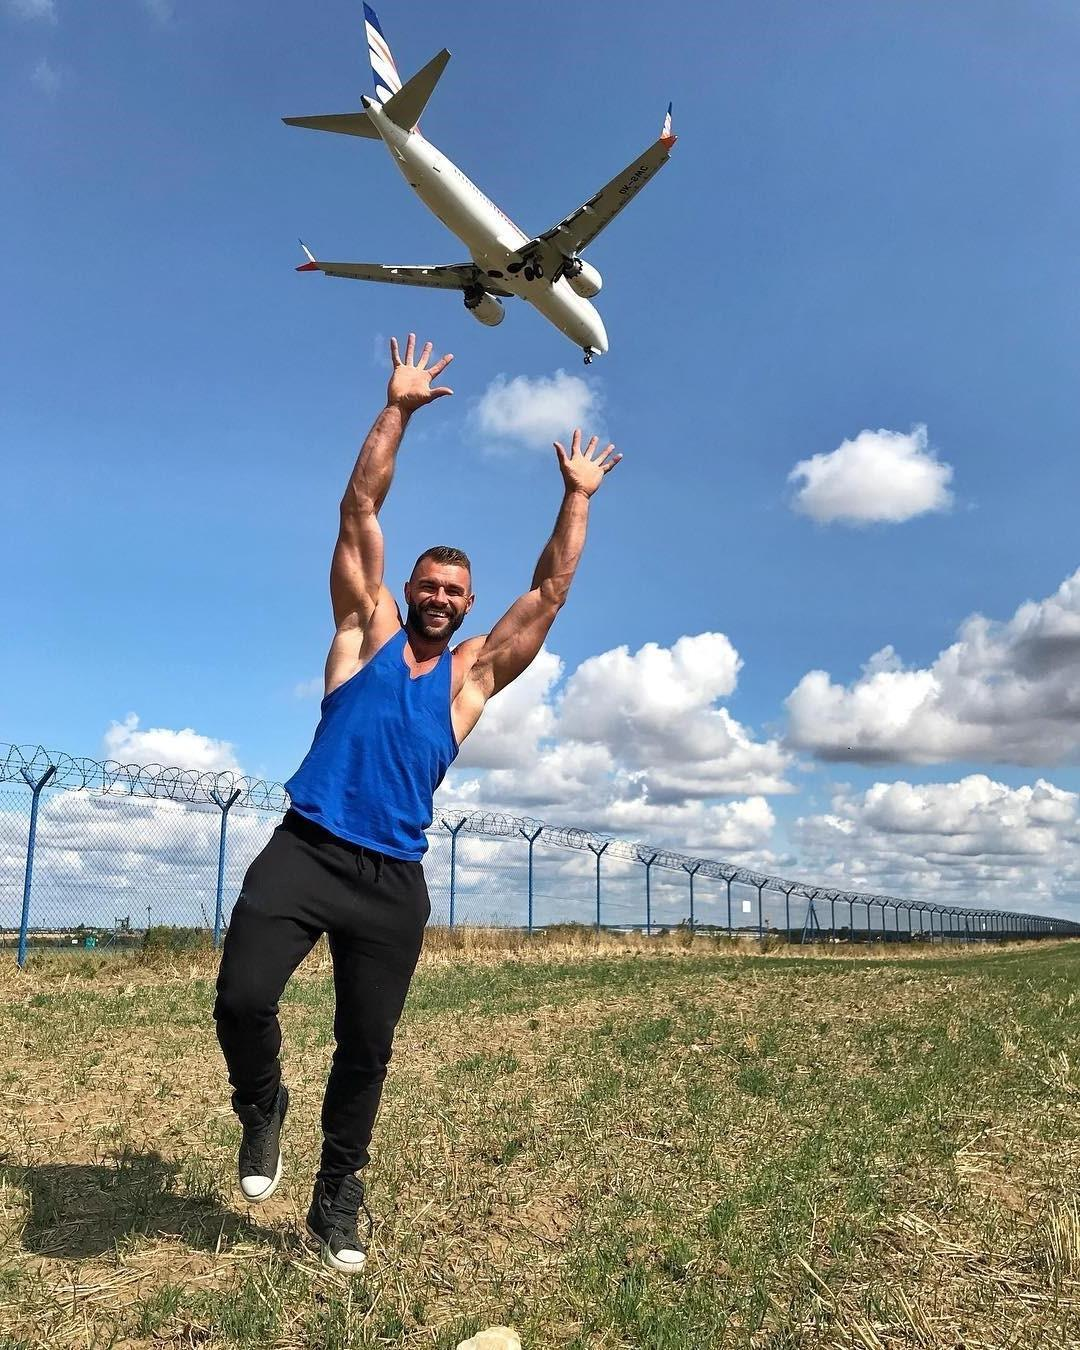 beefy-attractive-muscle-daddy-holding-huge-arms-up-smiling-airplane-flying-over